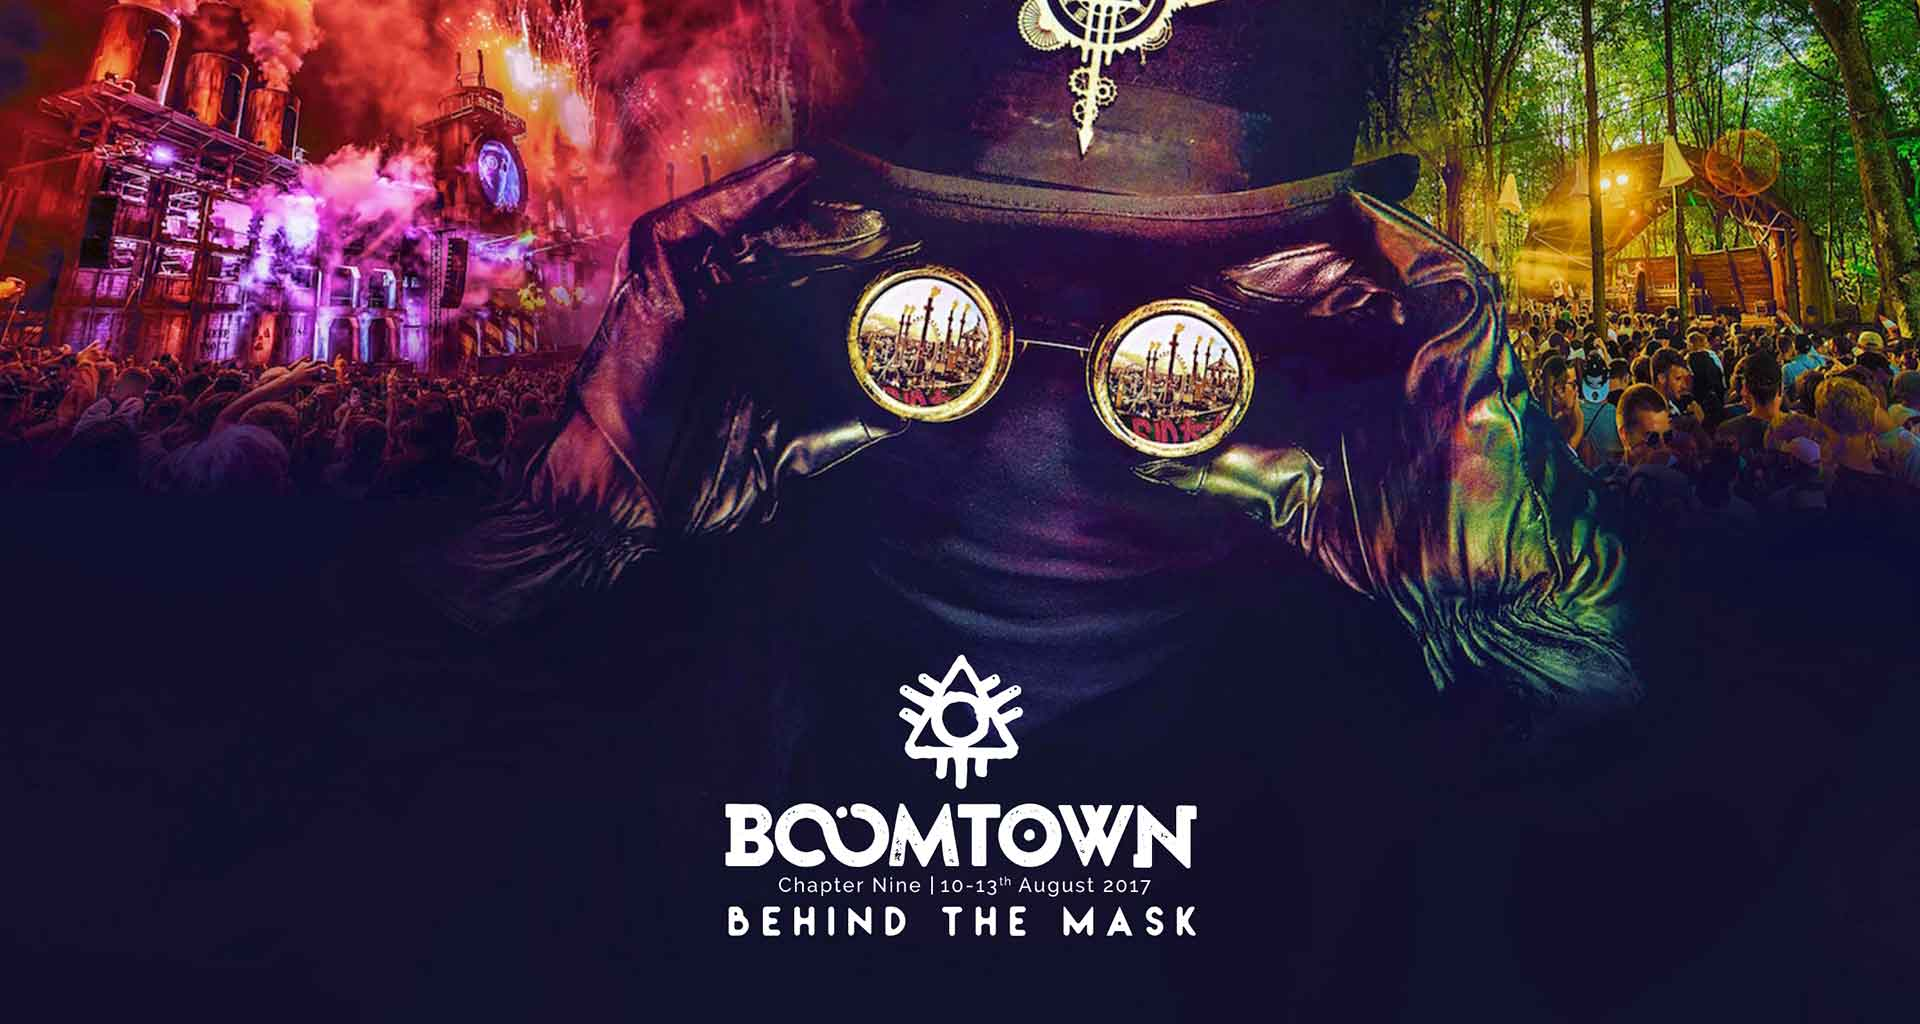 My Bad Sister @ BoomTown Fair, 10-13th August 2017  Hampshire UK